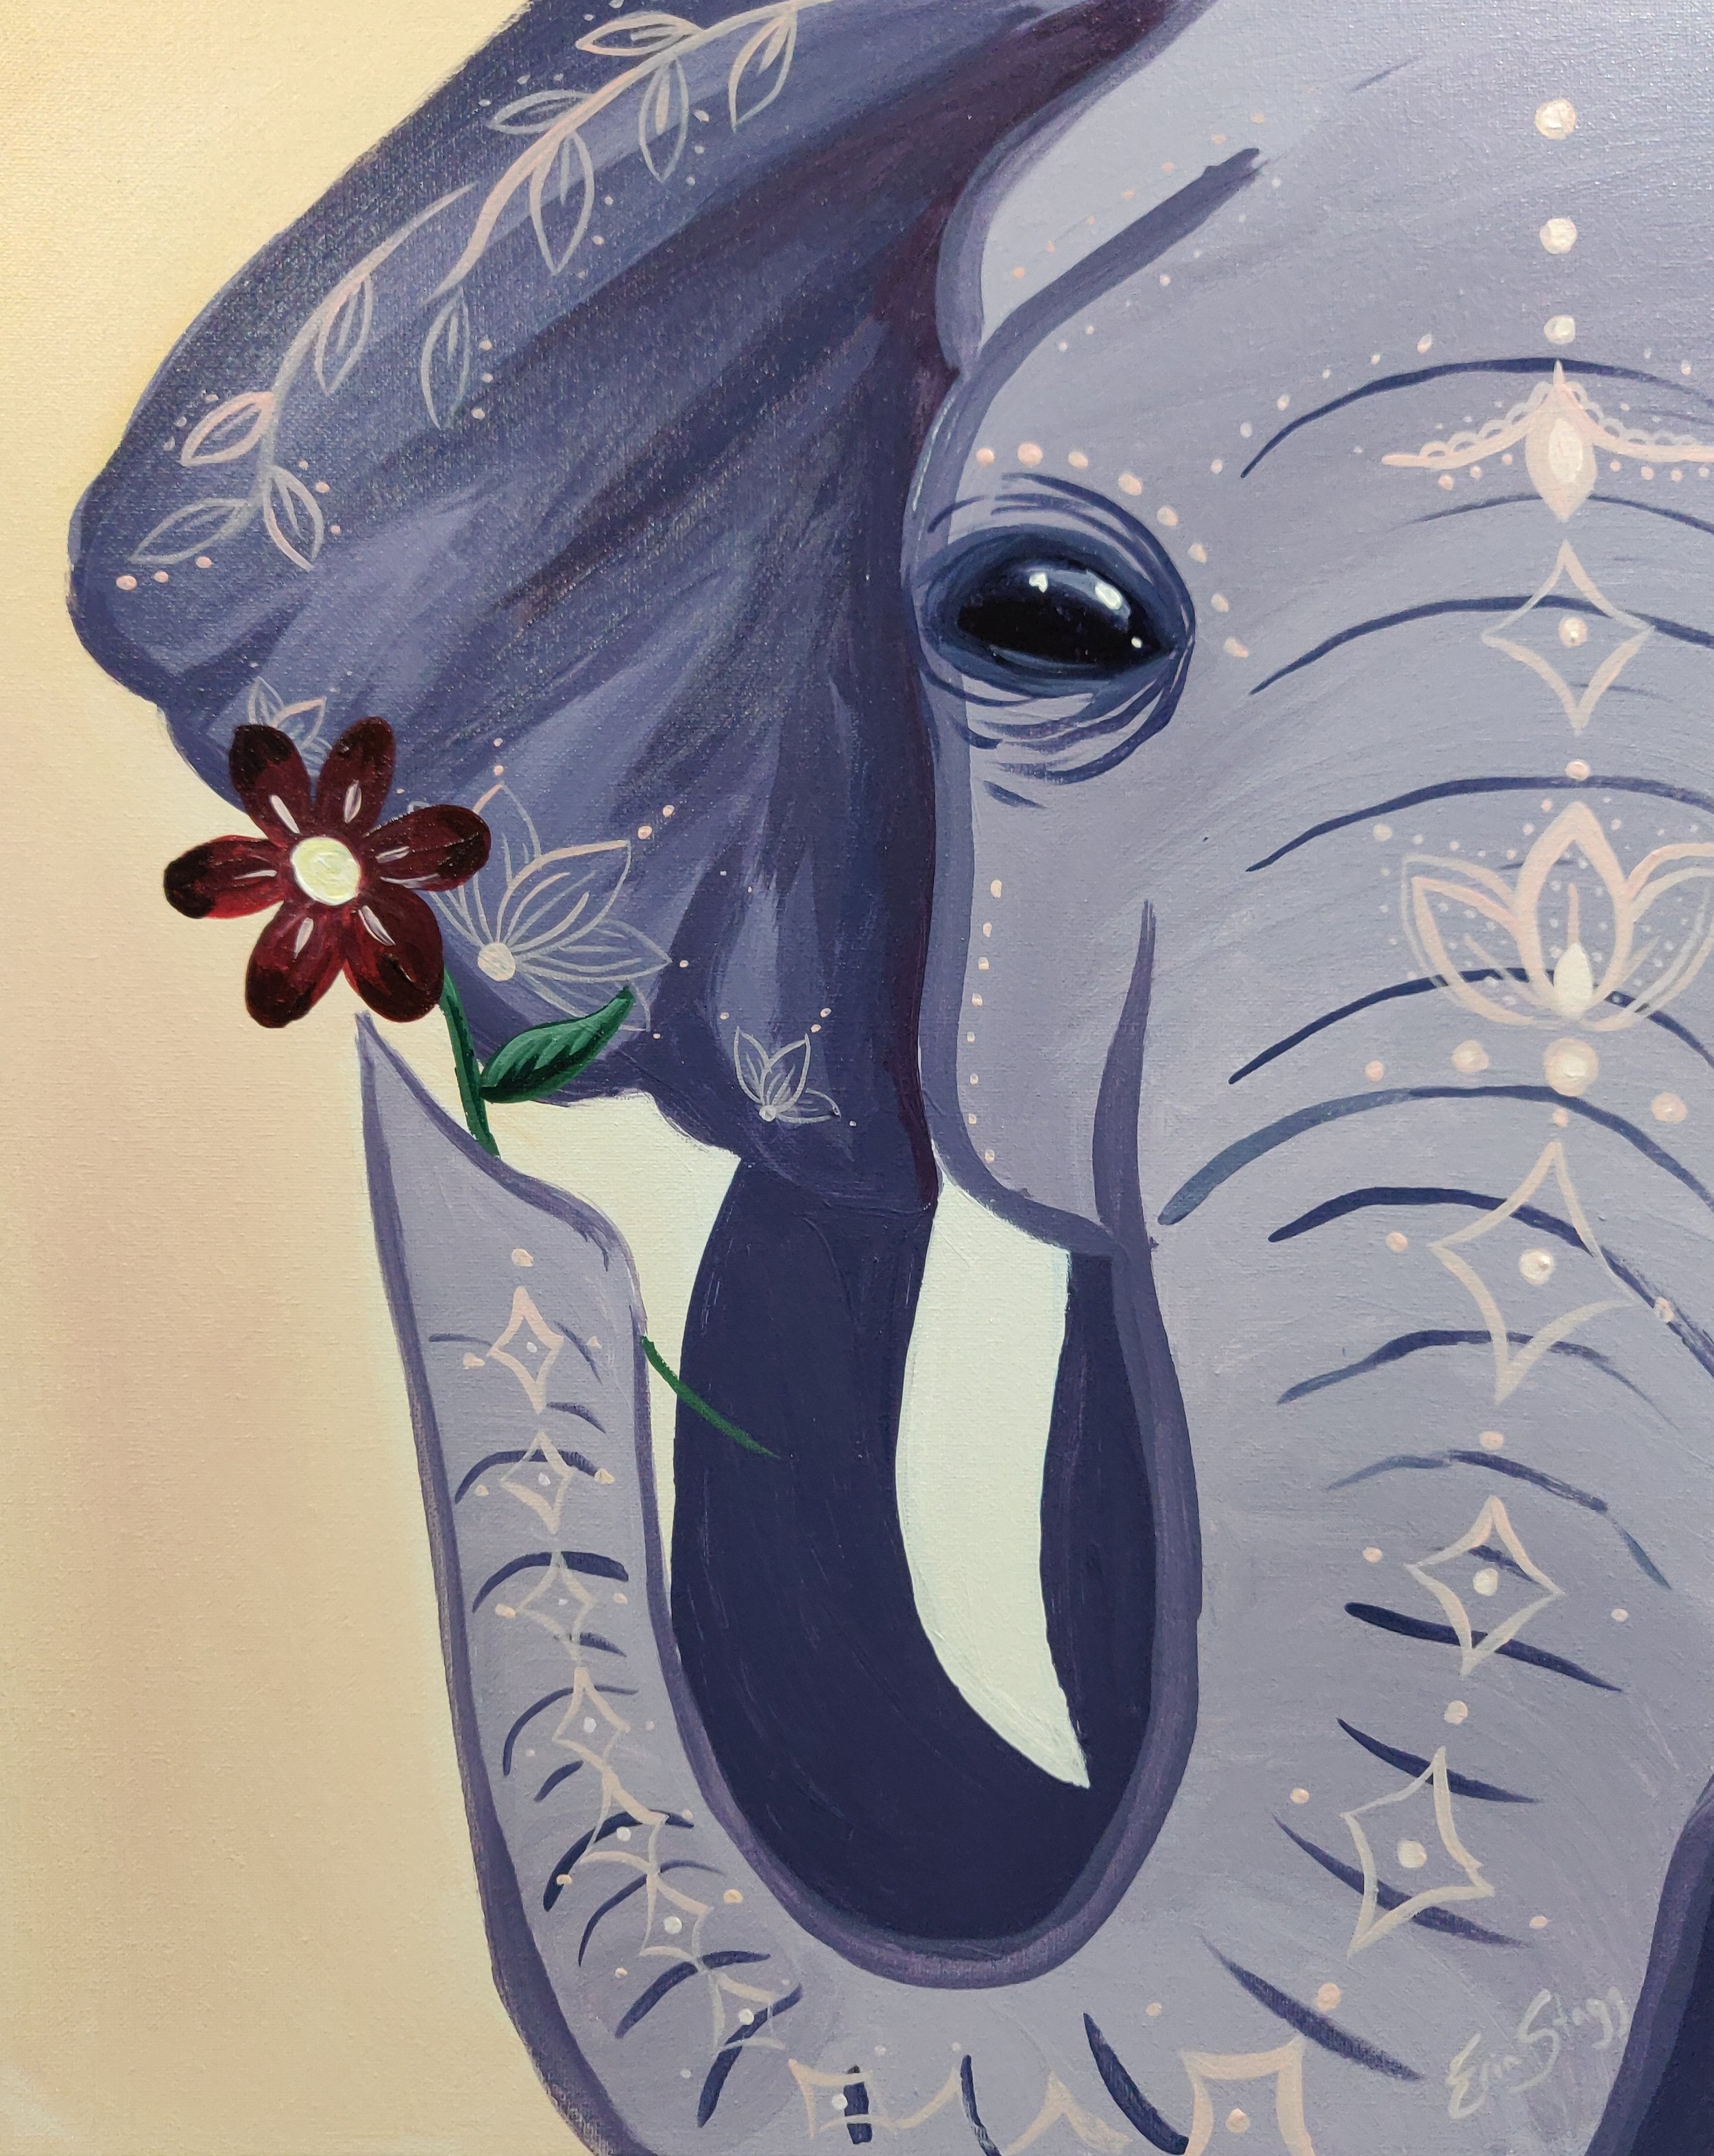 Elephant - with some colour changes